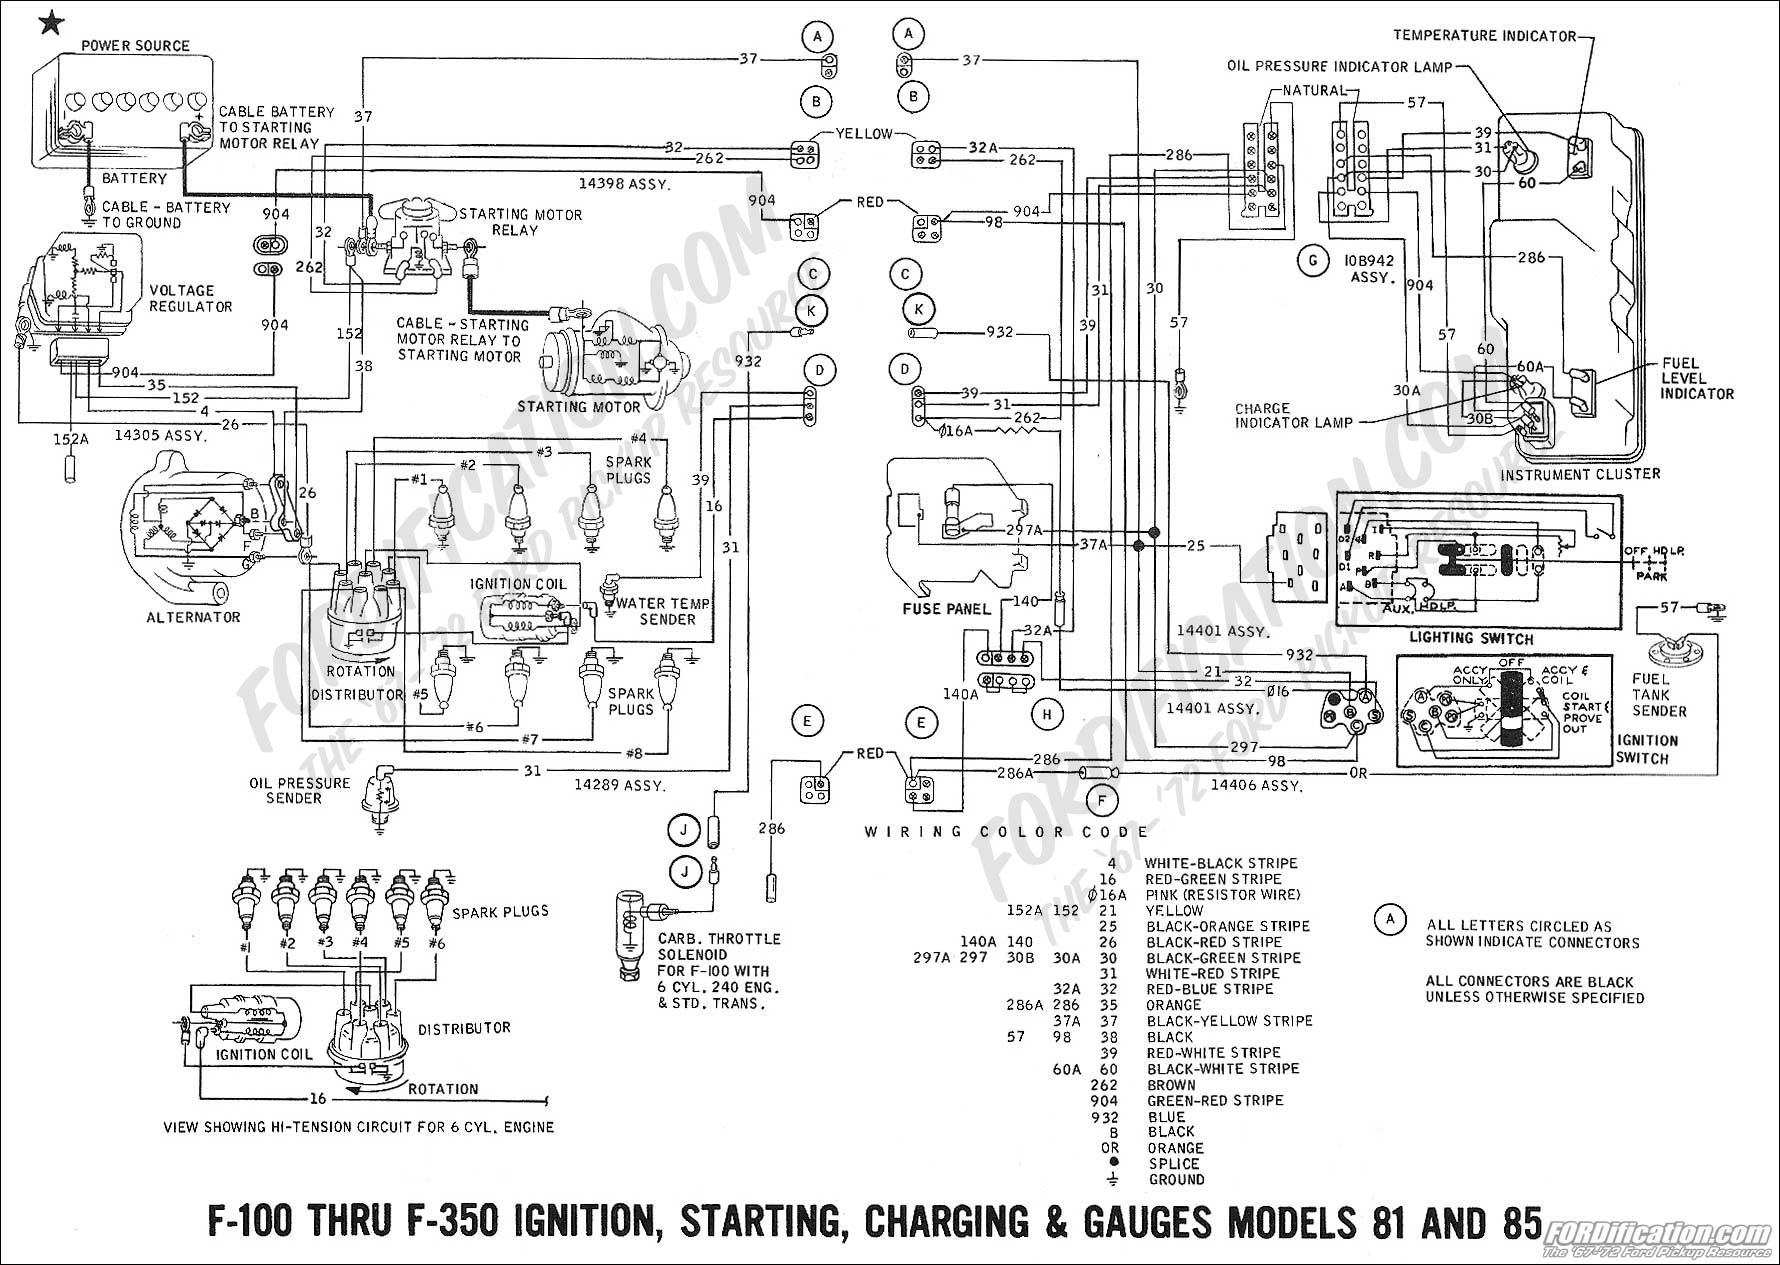 hight resolution of ford f250 wiring diagram wiring diagram inside 1977 f250 wiring diagram wiring diagram for you ford